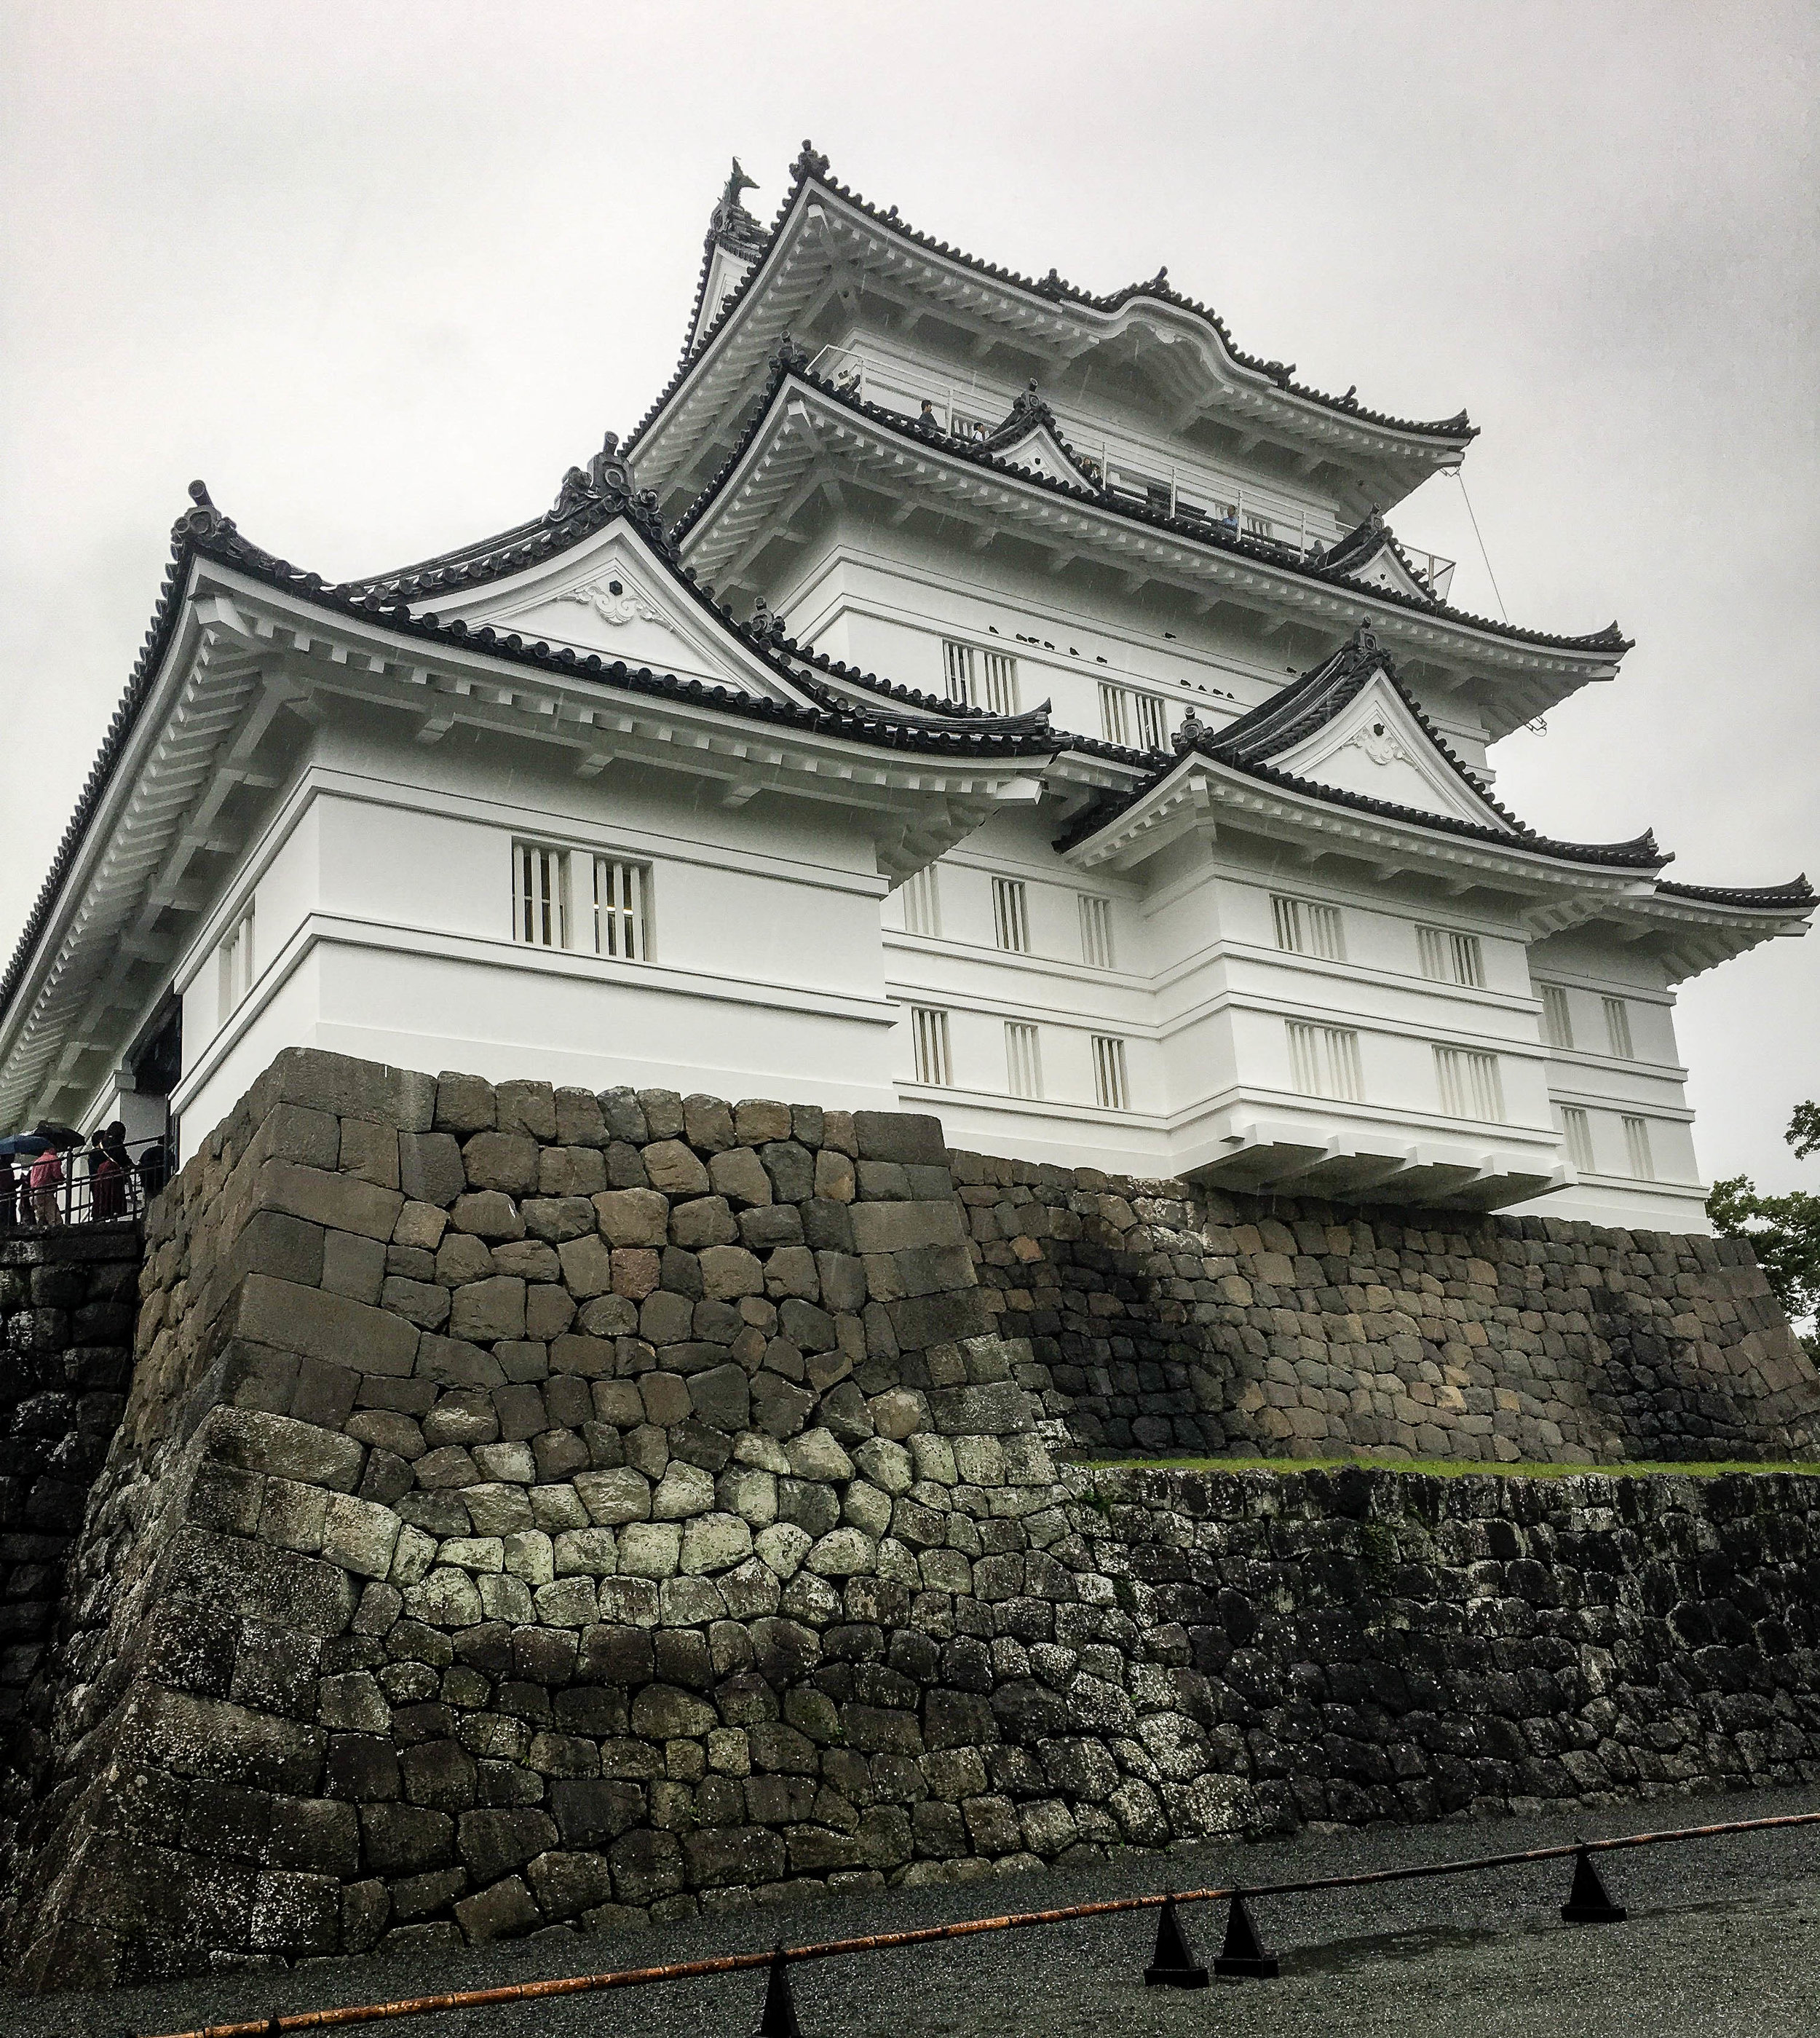 Tokyo Imperial Palace. Part of Tokyo itinerary 7 days